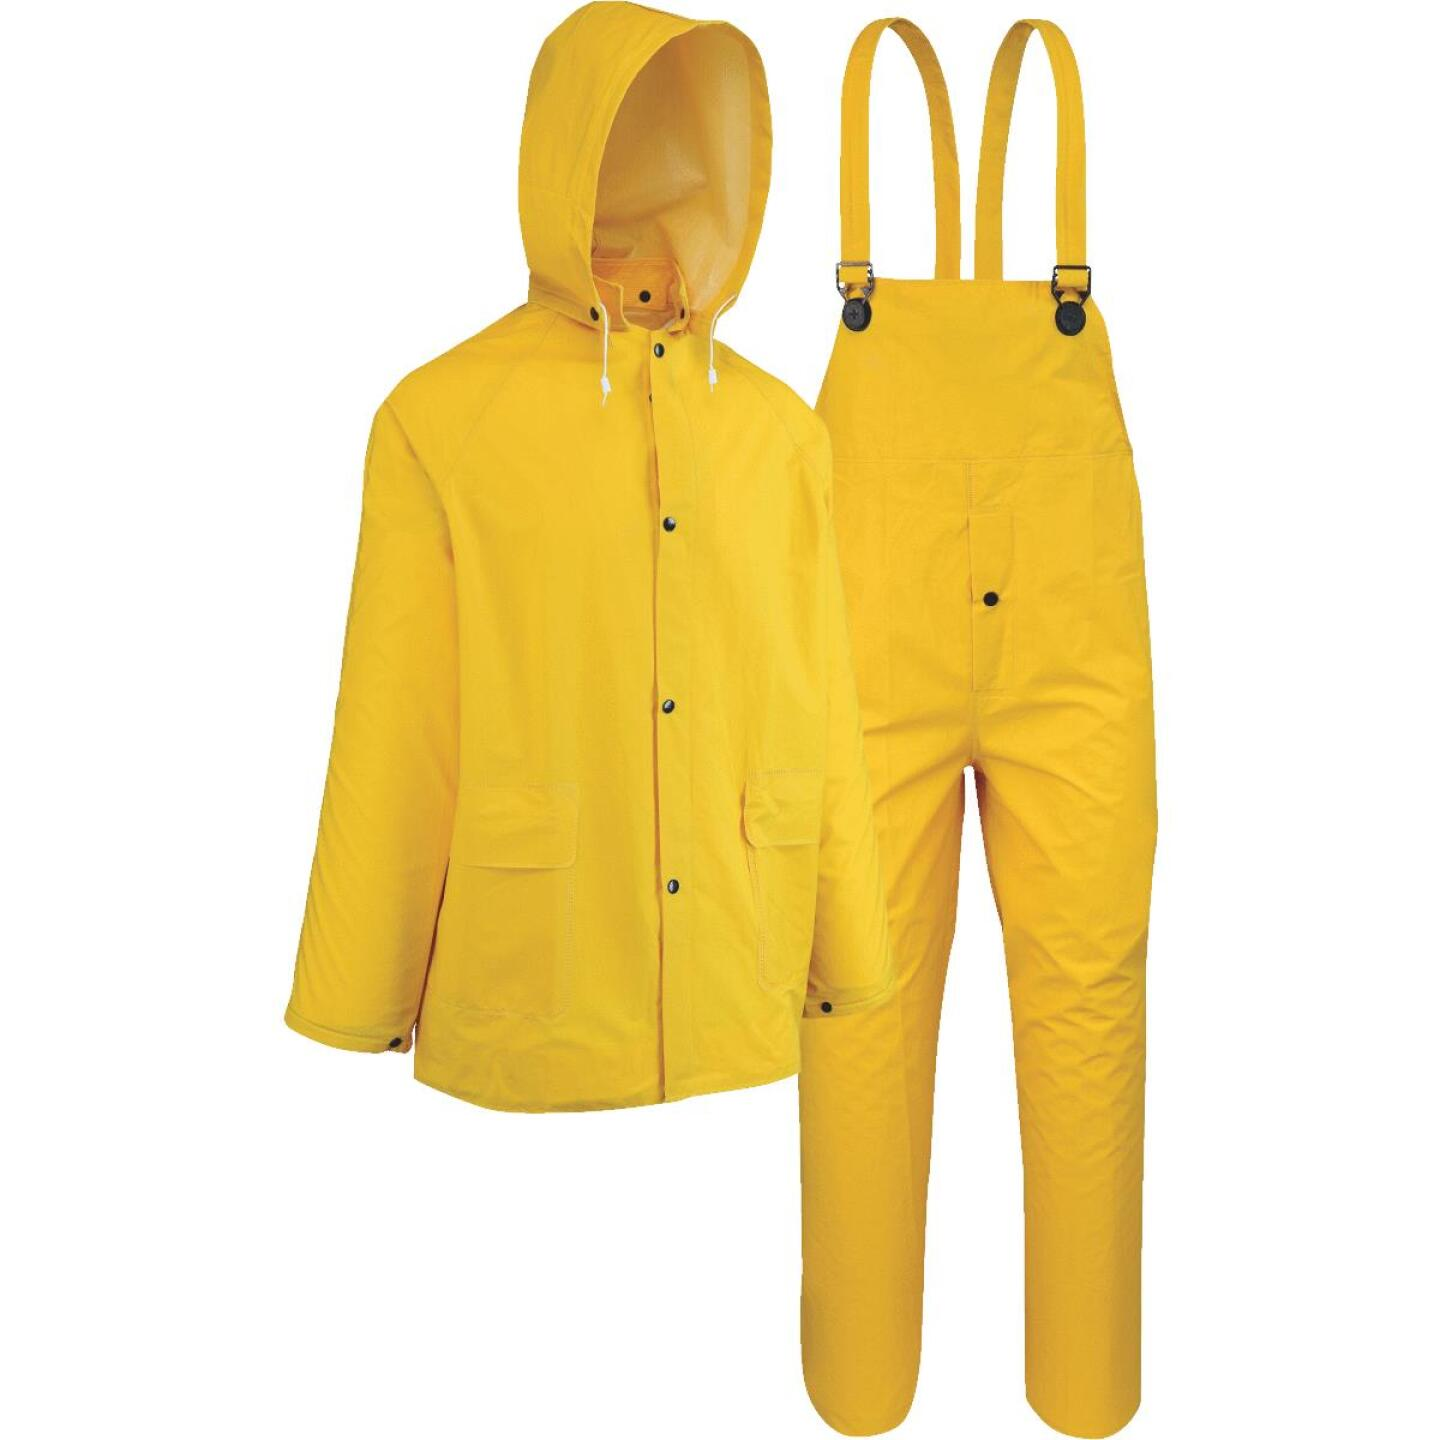 West Chester Medium 3-Piece Yellow PVC Rain Suit Image 1